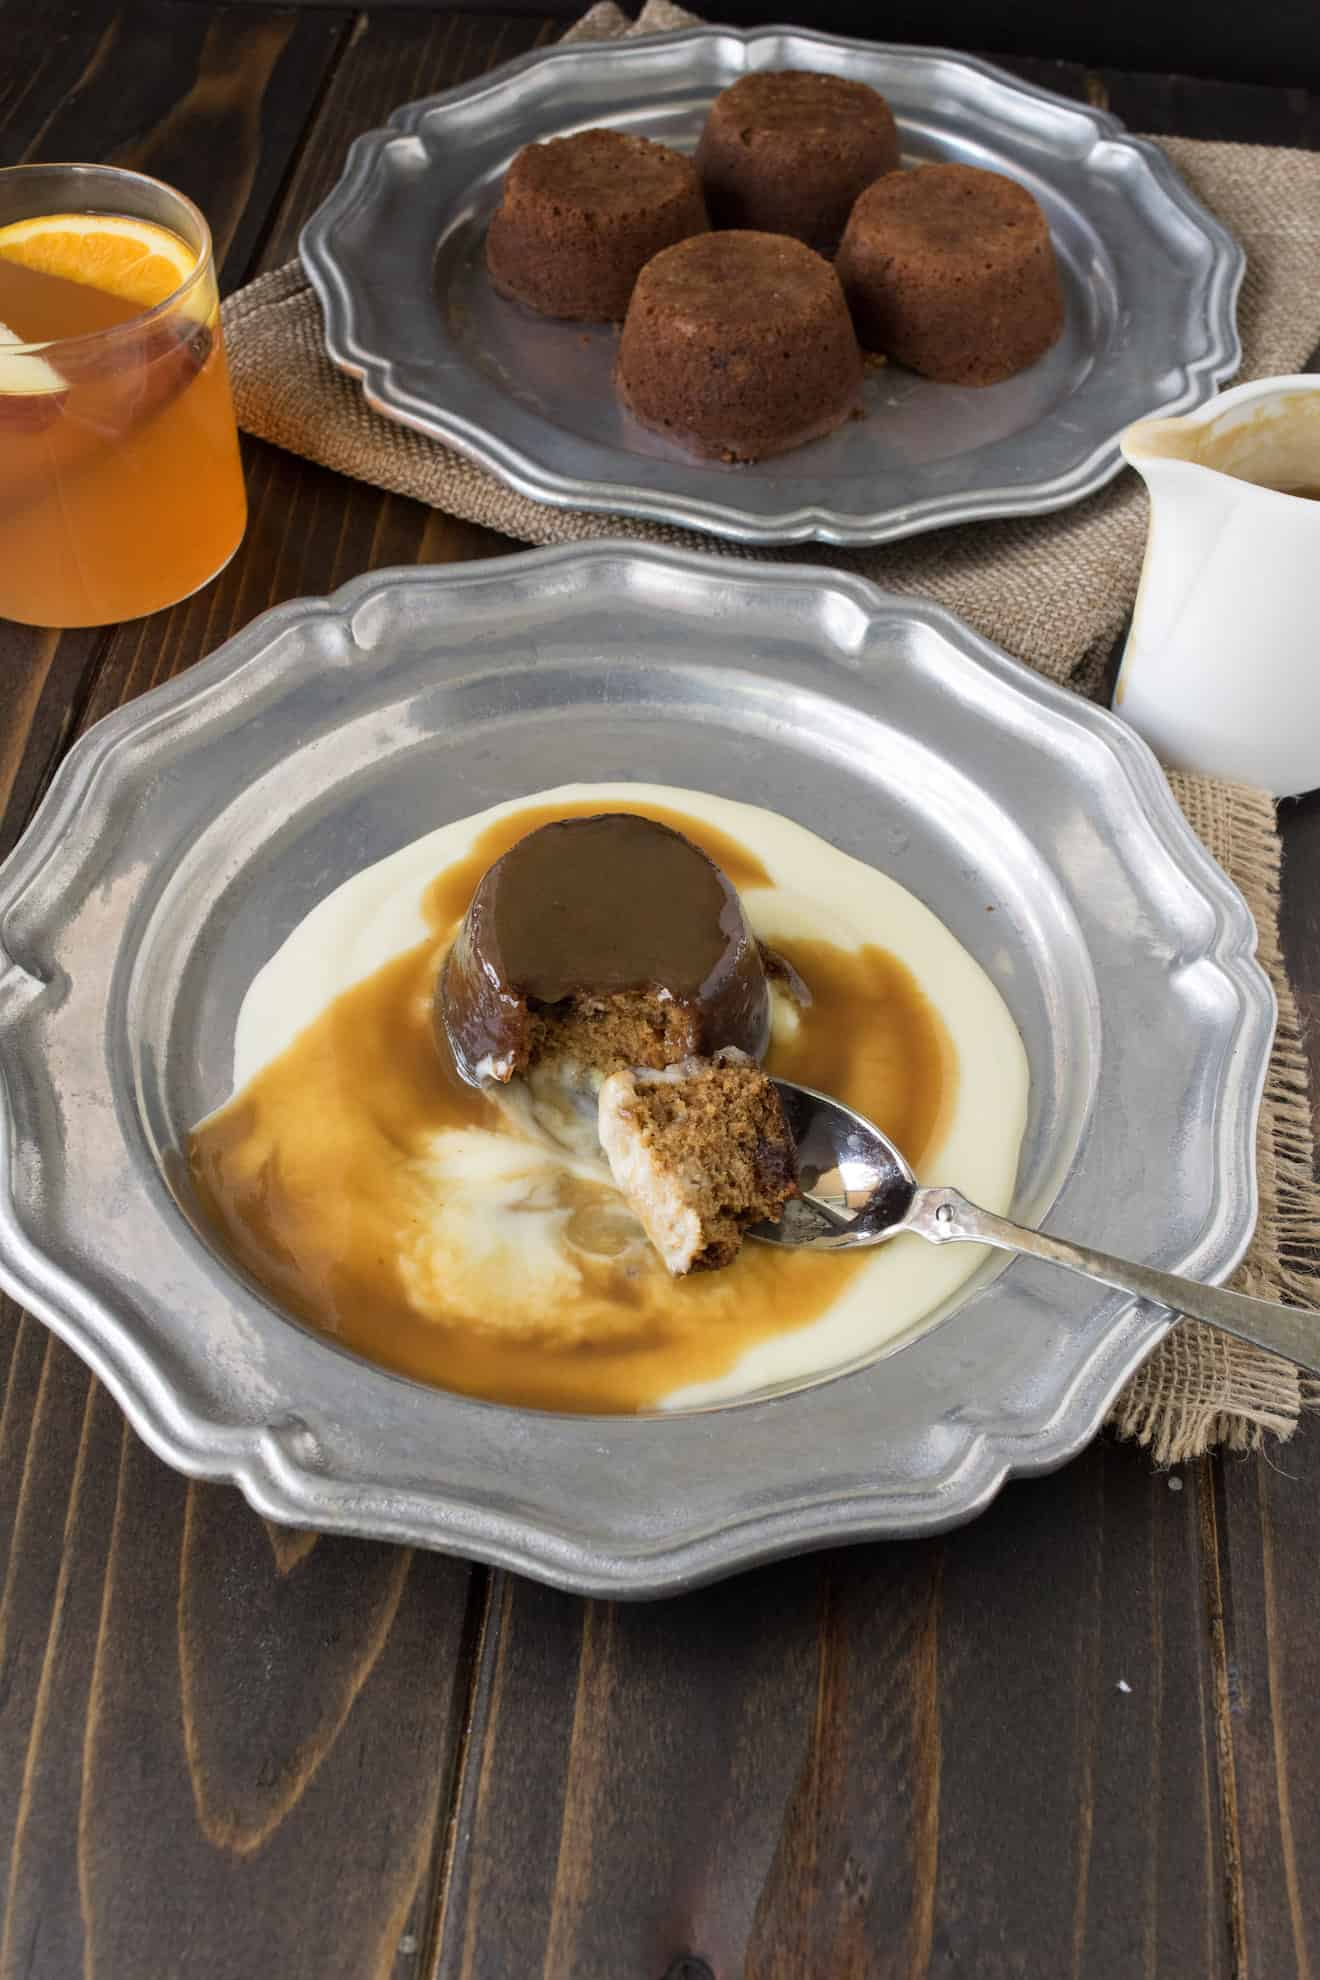 A spoonful of sticky toffee pudding